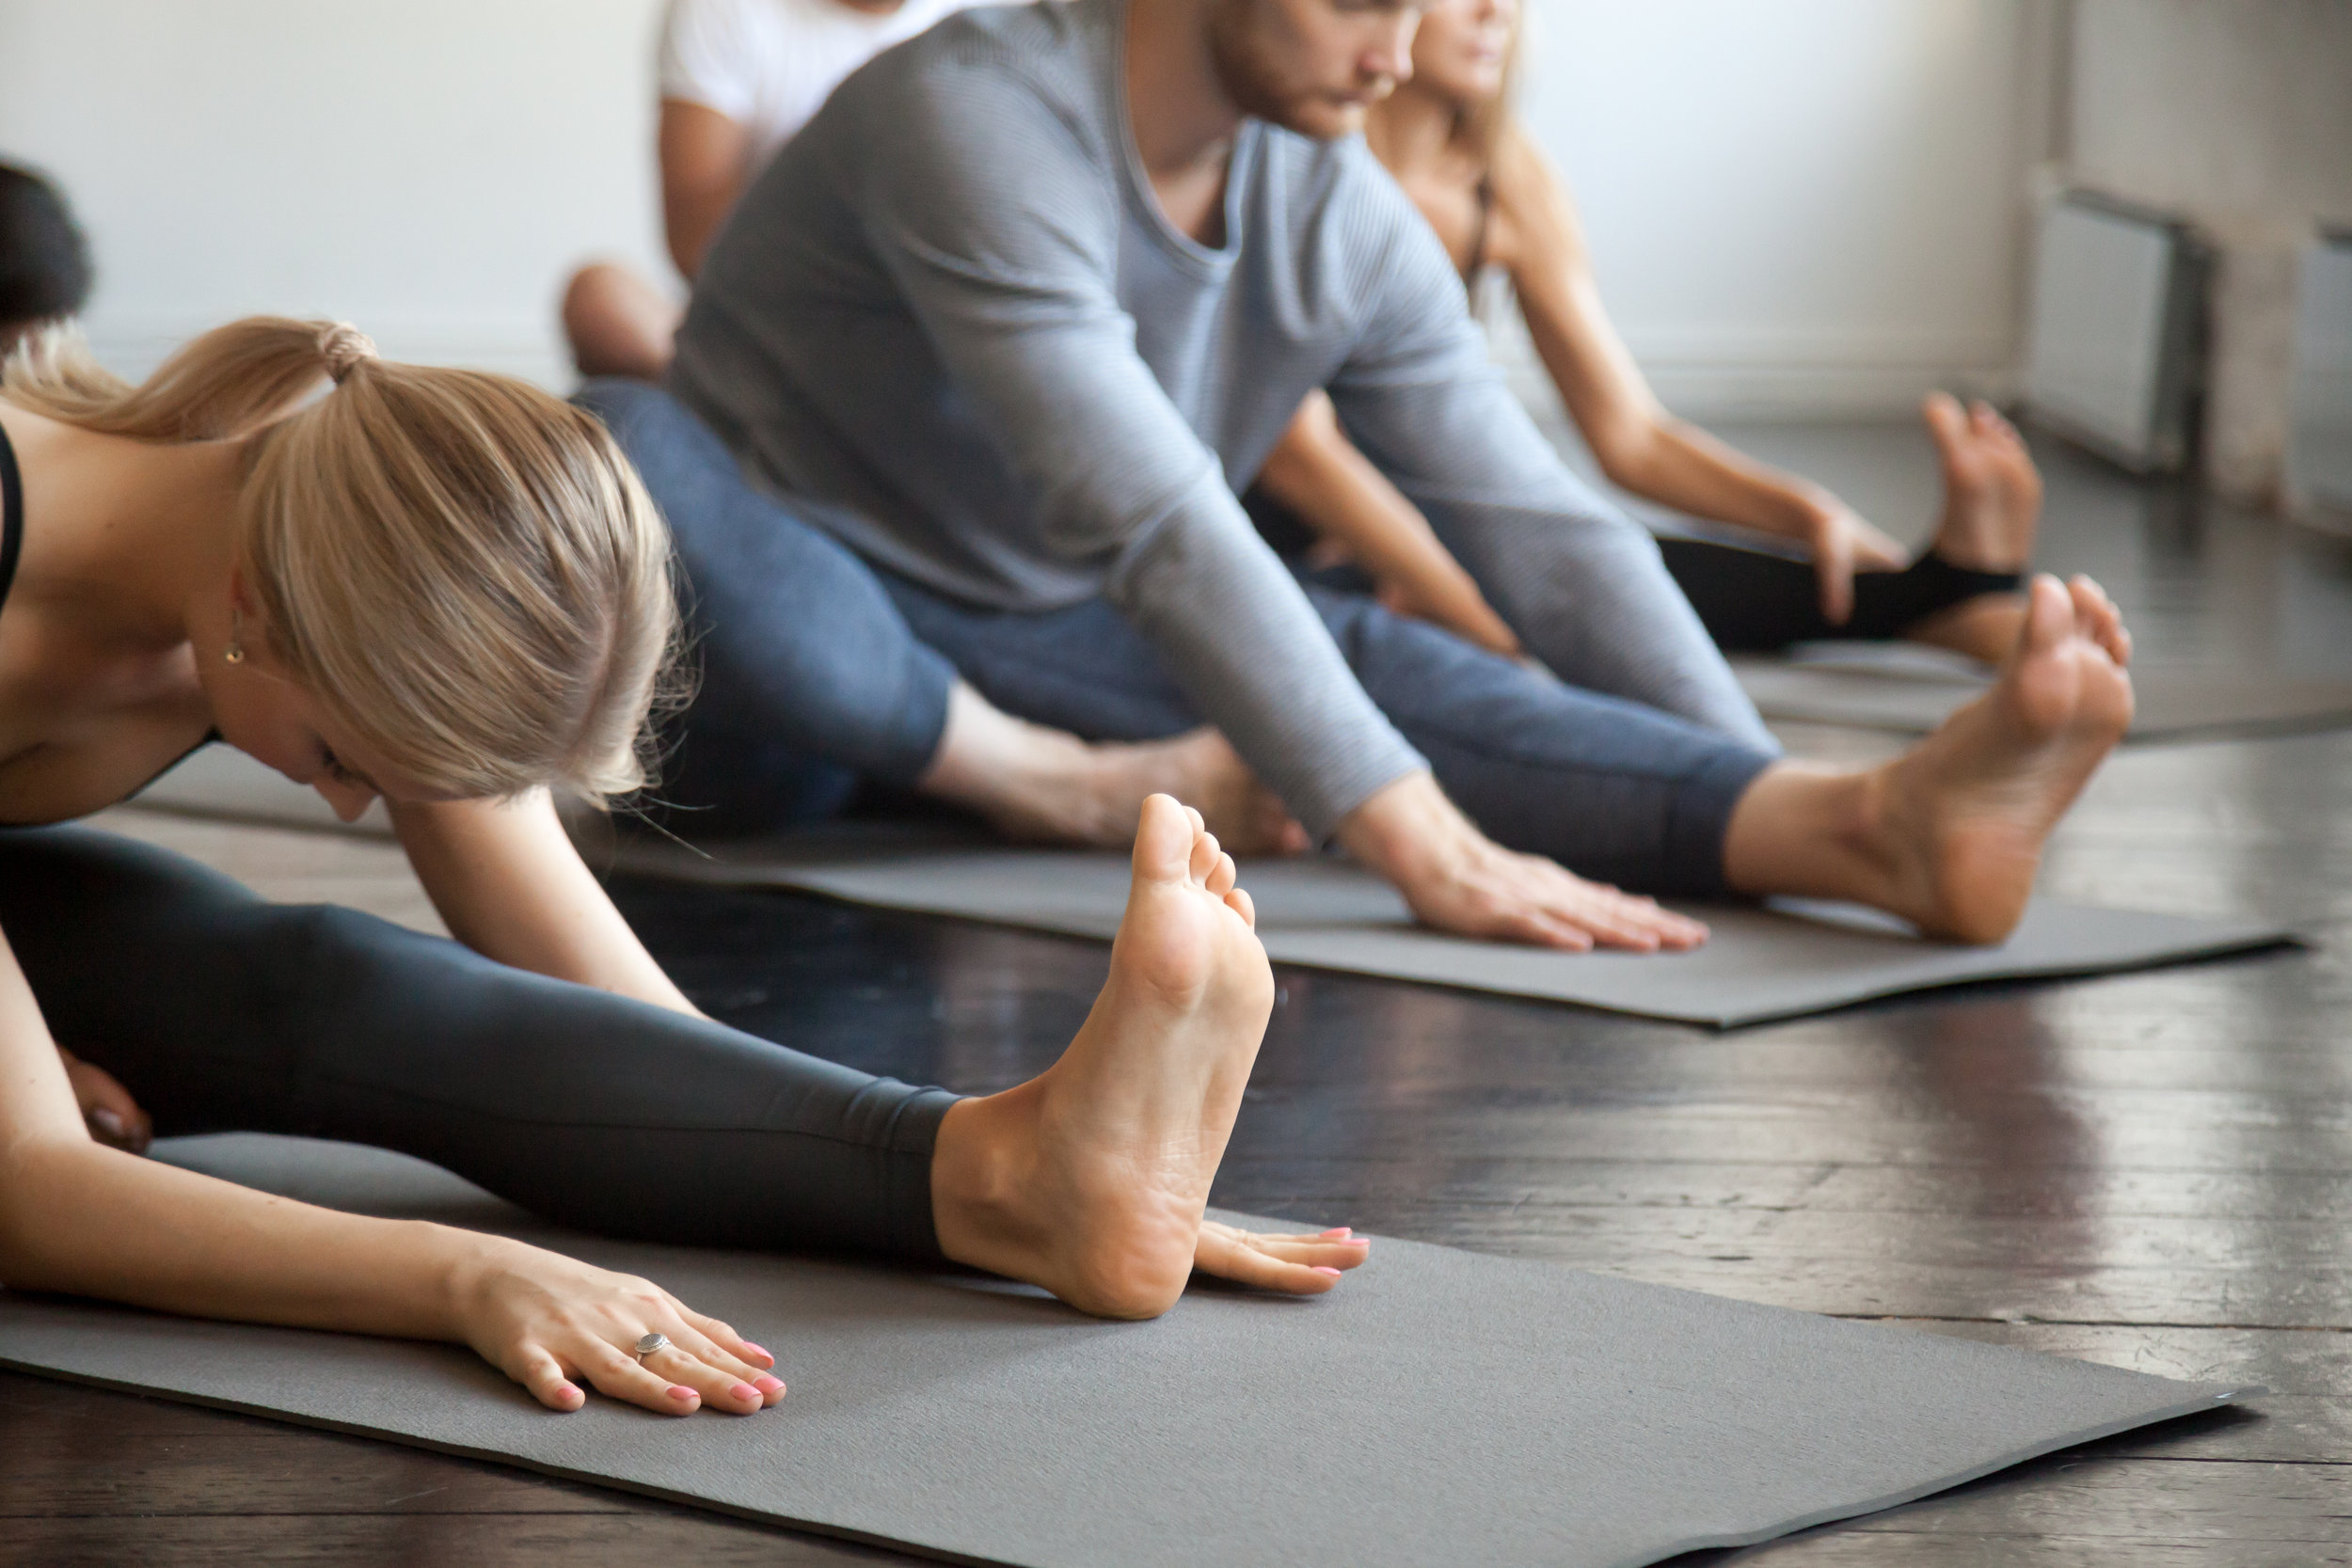 philadelphia-yoga-meditation-classes